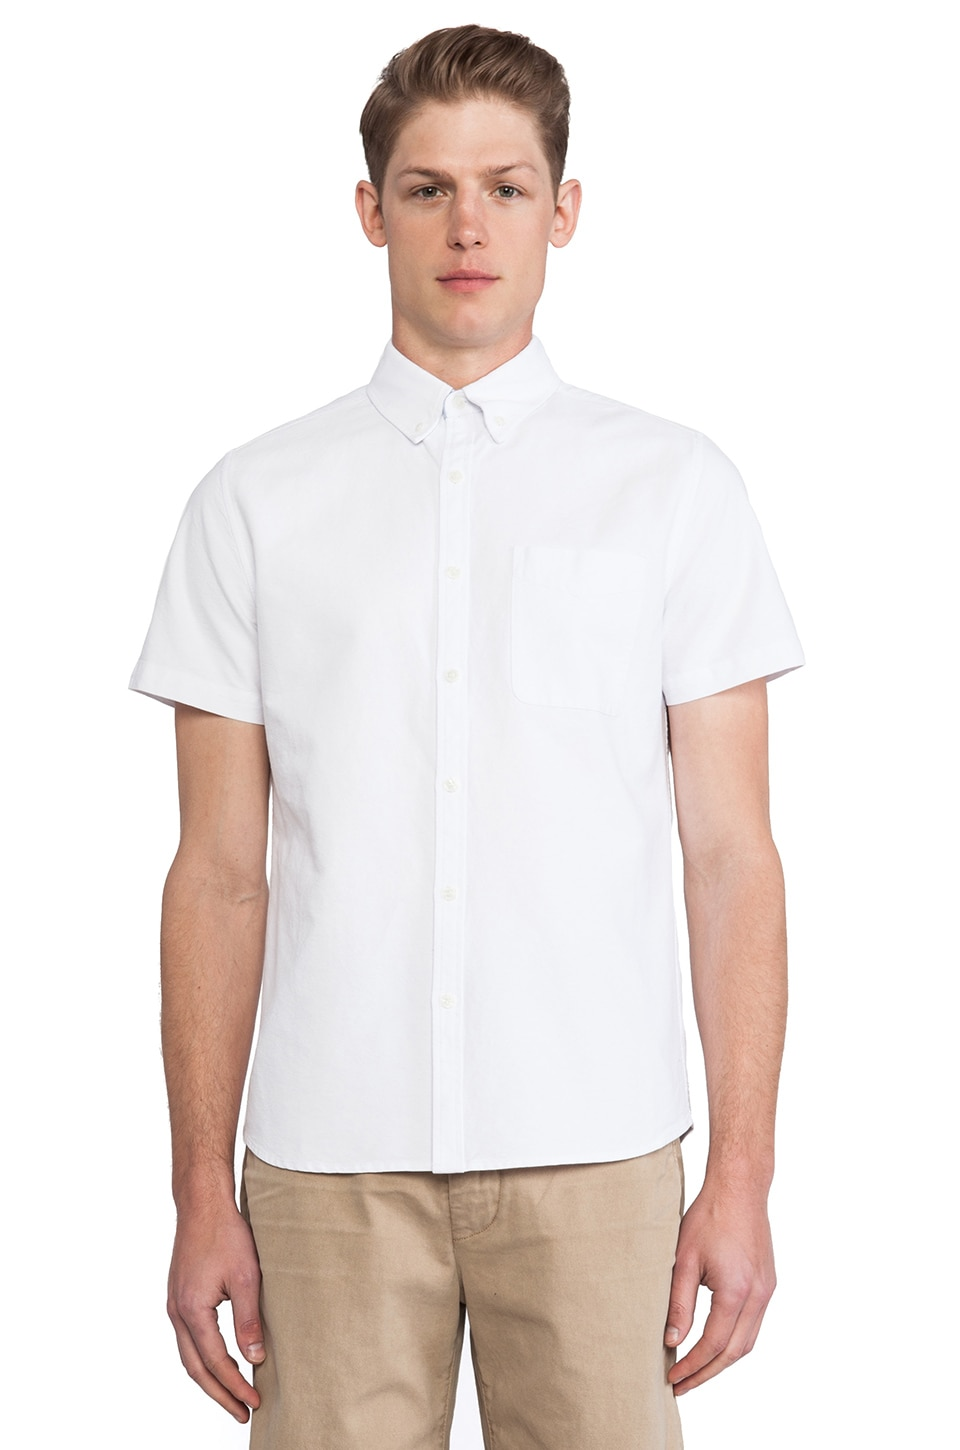 AG Adriano Goldschmied Aviator Shirt in Oxford White